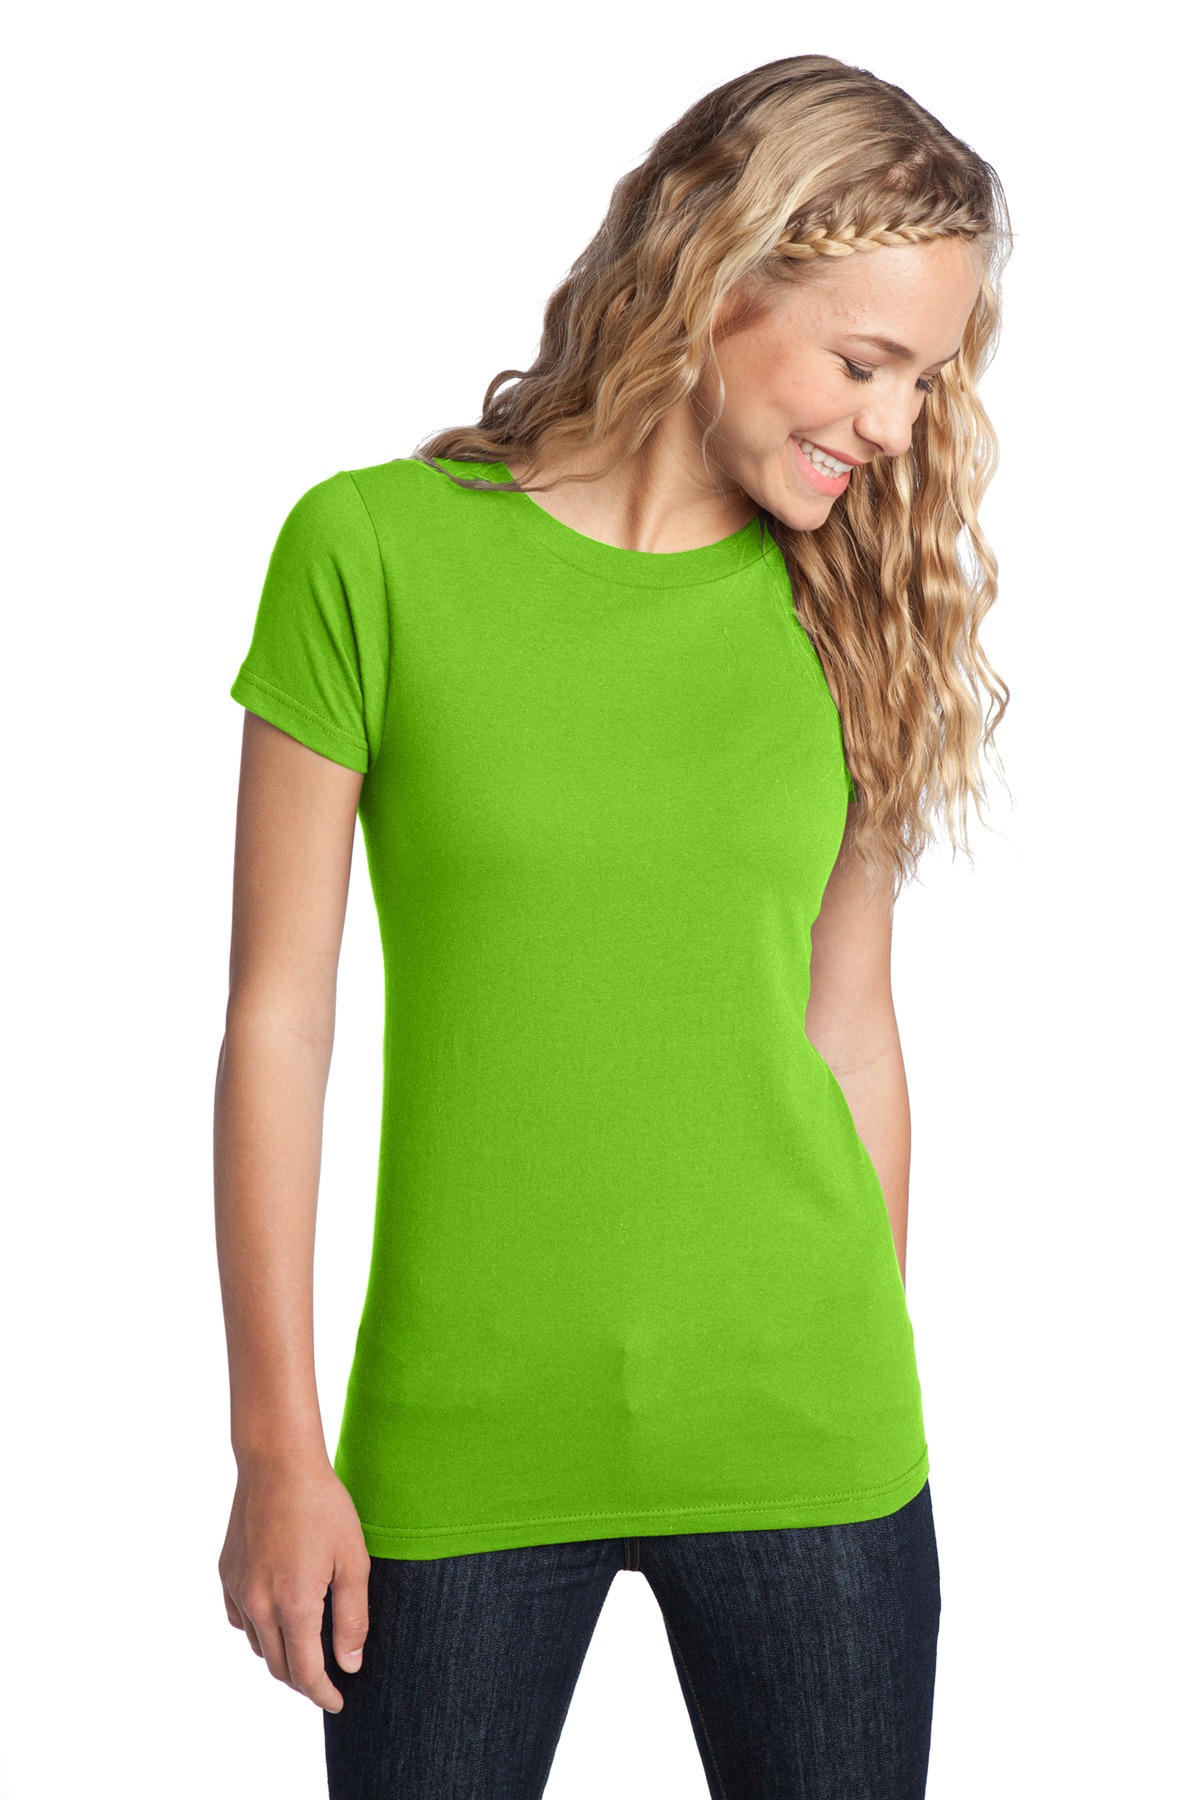 District ®  Women's Fitted The Concert Tee ®  DT5001 - Neon Green